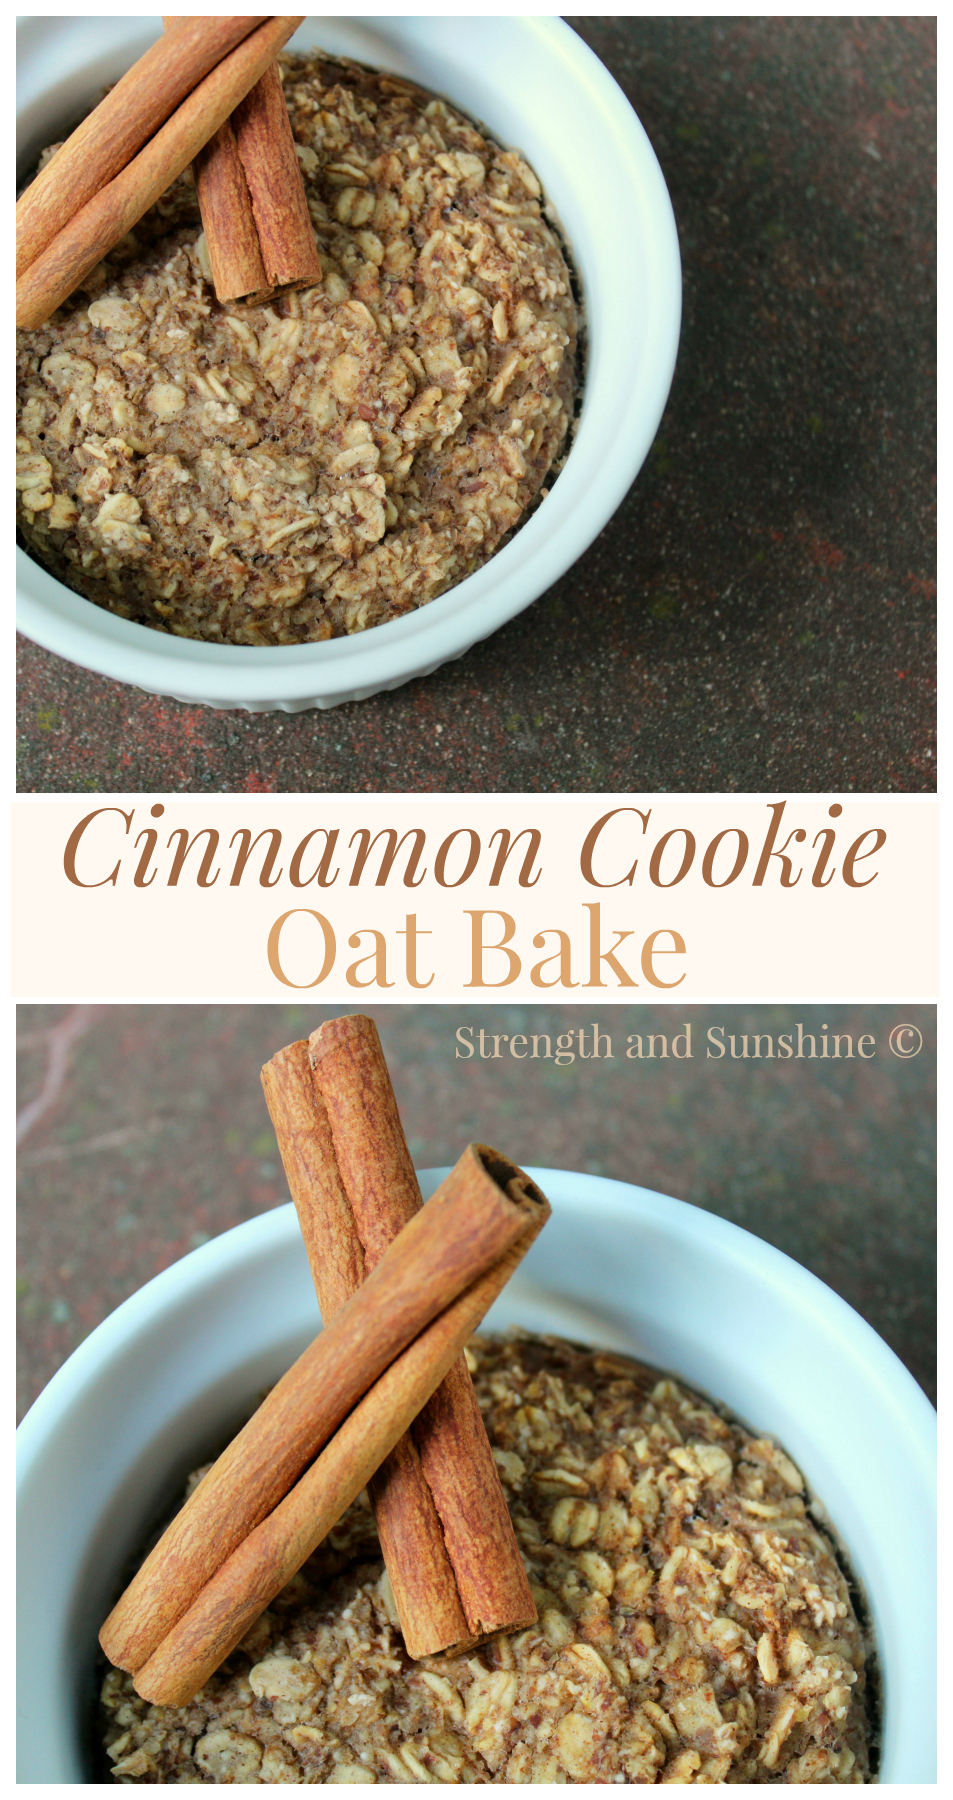 Cinnamon Cookie Oat Bake | Strength and Sunshine @RebeccaGF666 Like a warm cinnamon cookie fresh from the oven, this gluten-free, vegan, and refined sugar-free oat bake will make the perfect breakfast.